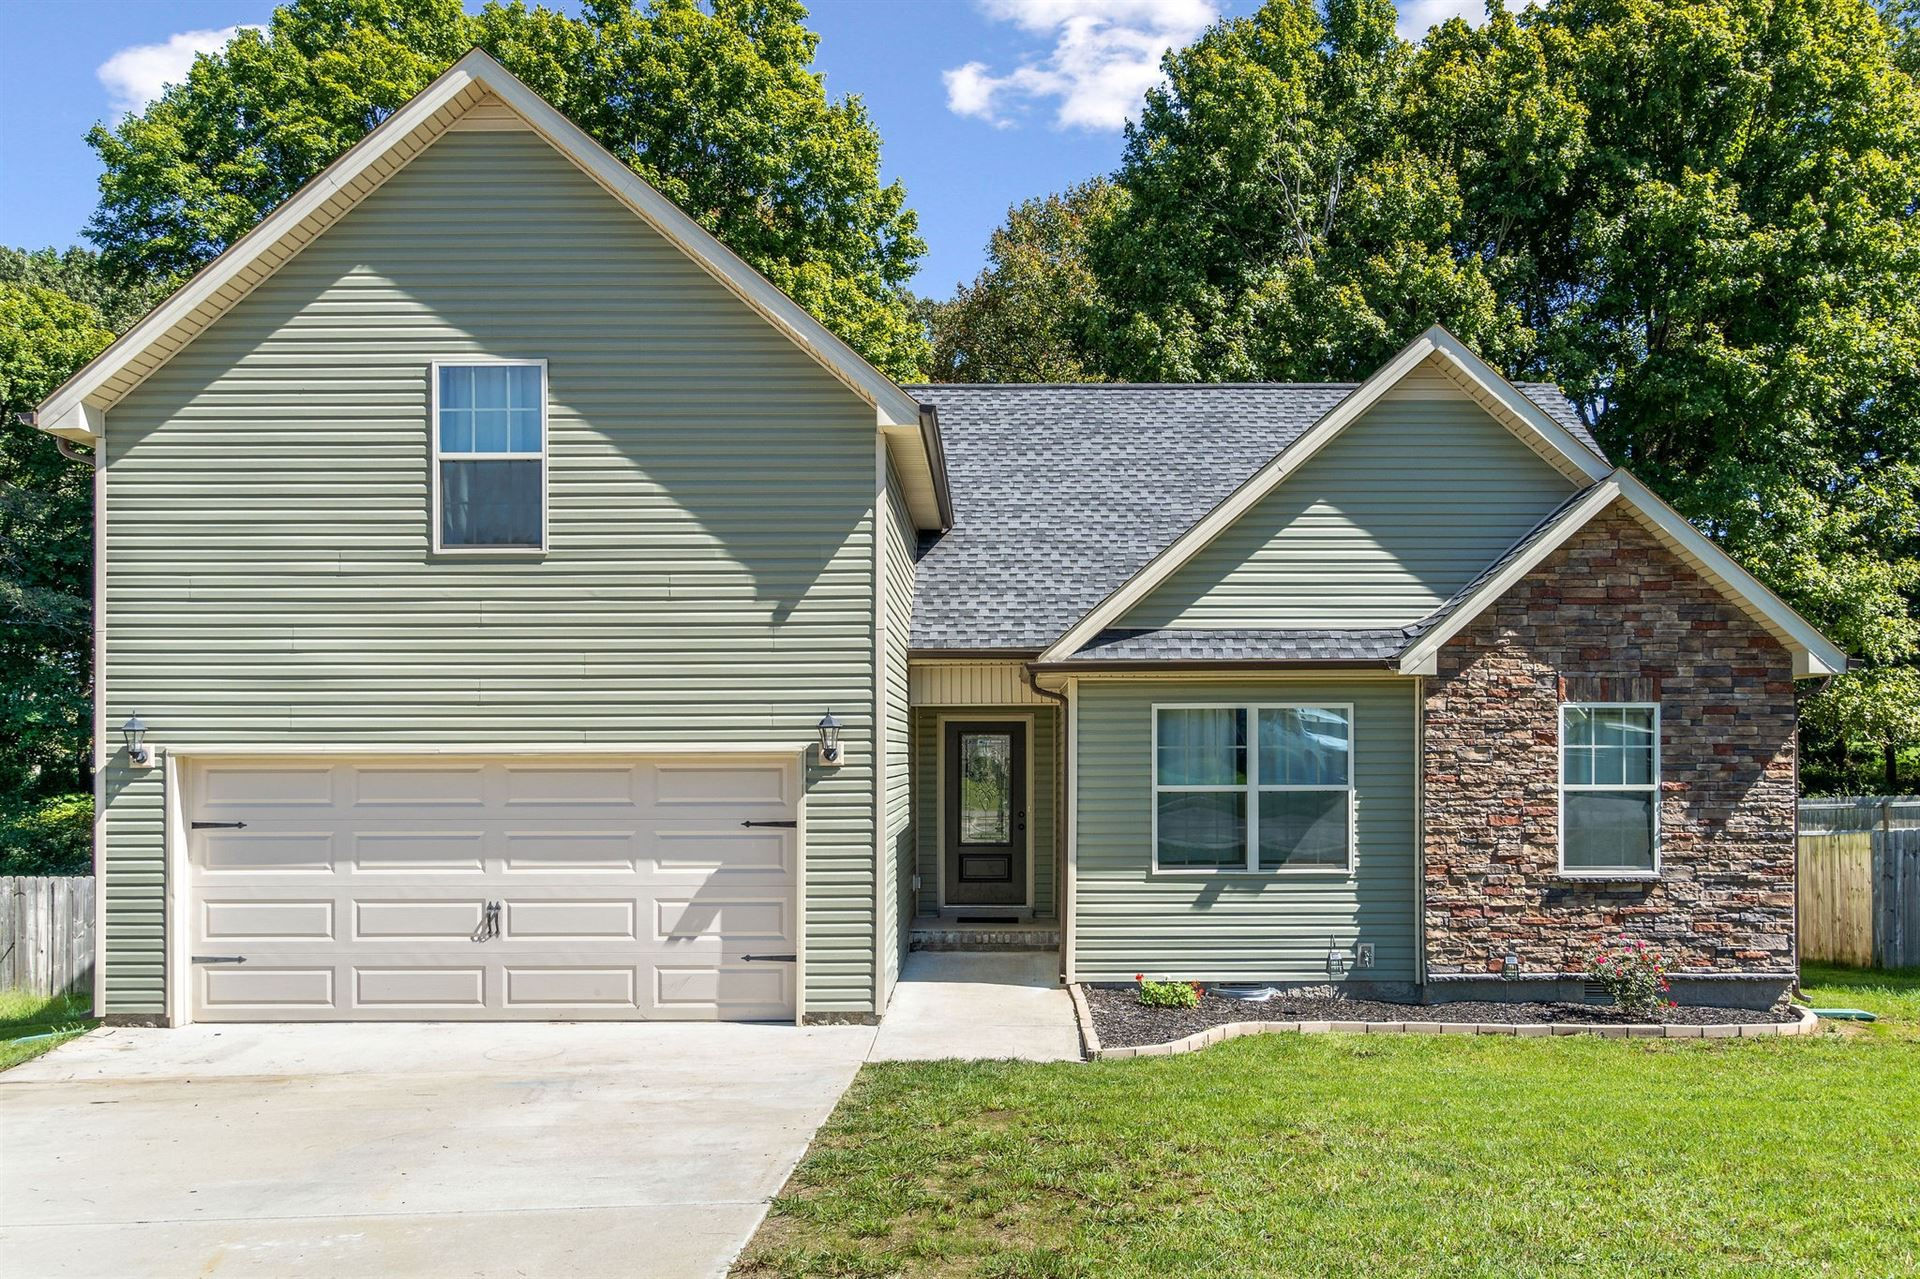 Photo of 125 Sycamore Hill Dr, Clarksville, TN 37042 (MLS # 2293171)